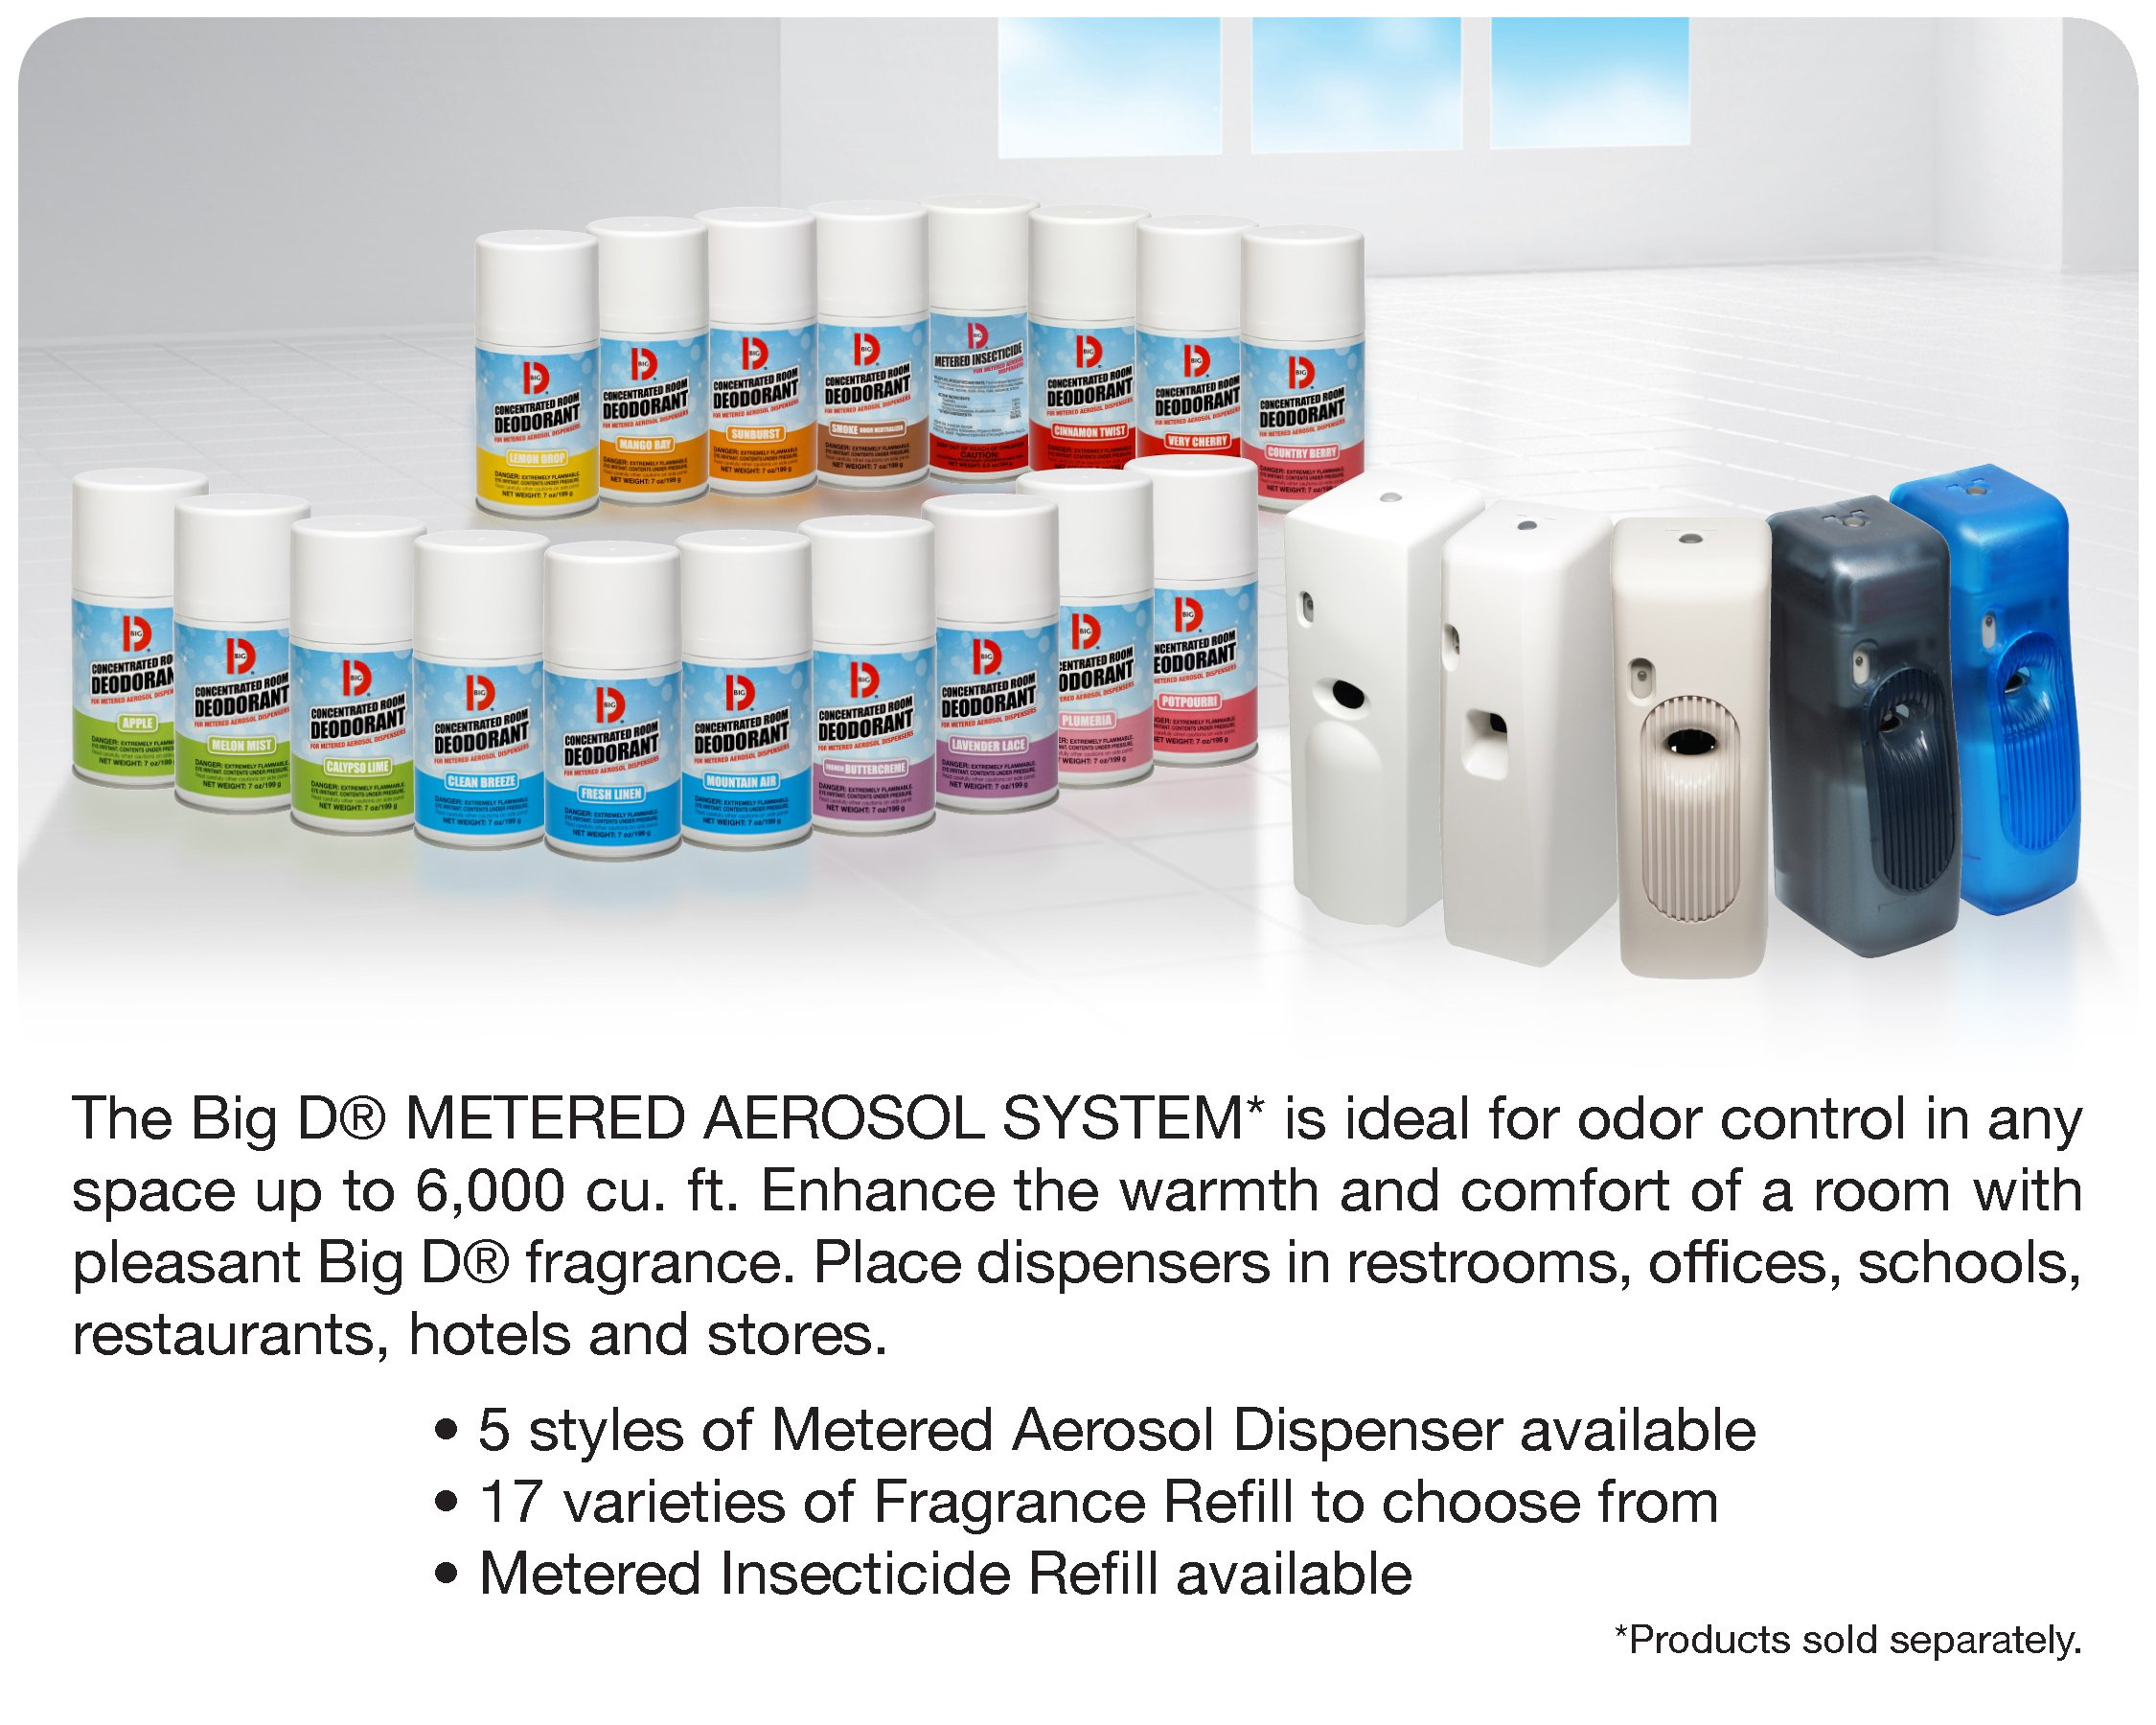 Big D 463 Concentrated Room Deodorant for Metered Aerosol Dispensers, Mountain Air Fragrance, 7 oz (Pack of 12) - Air freshener ideal for restrooms, offices, schools, restaurants, hotels, stores by Big D (Image #3)